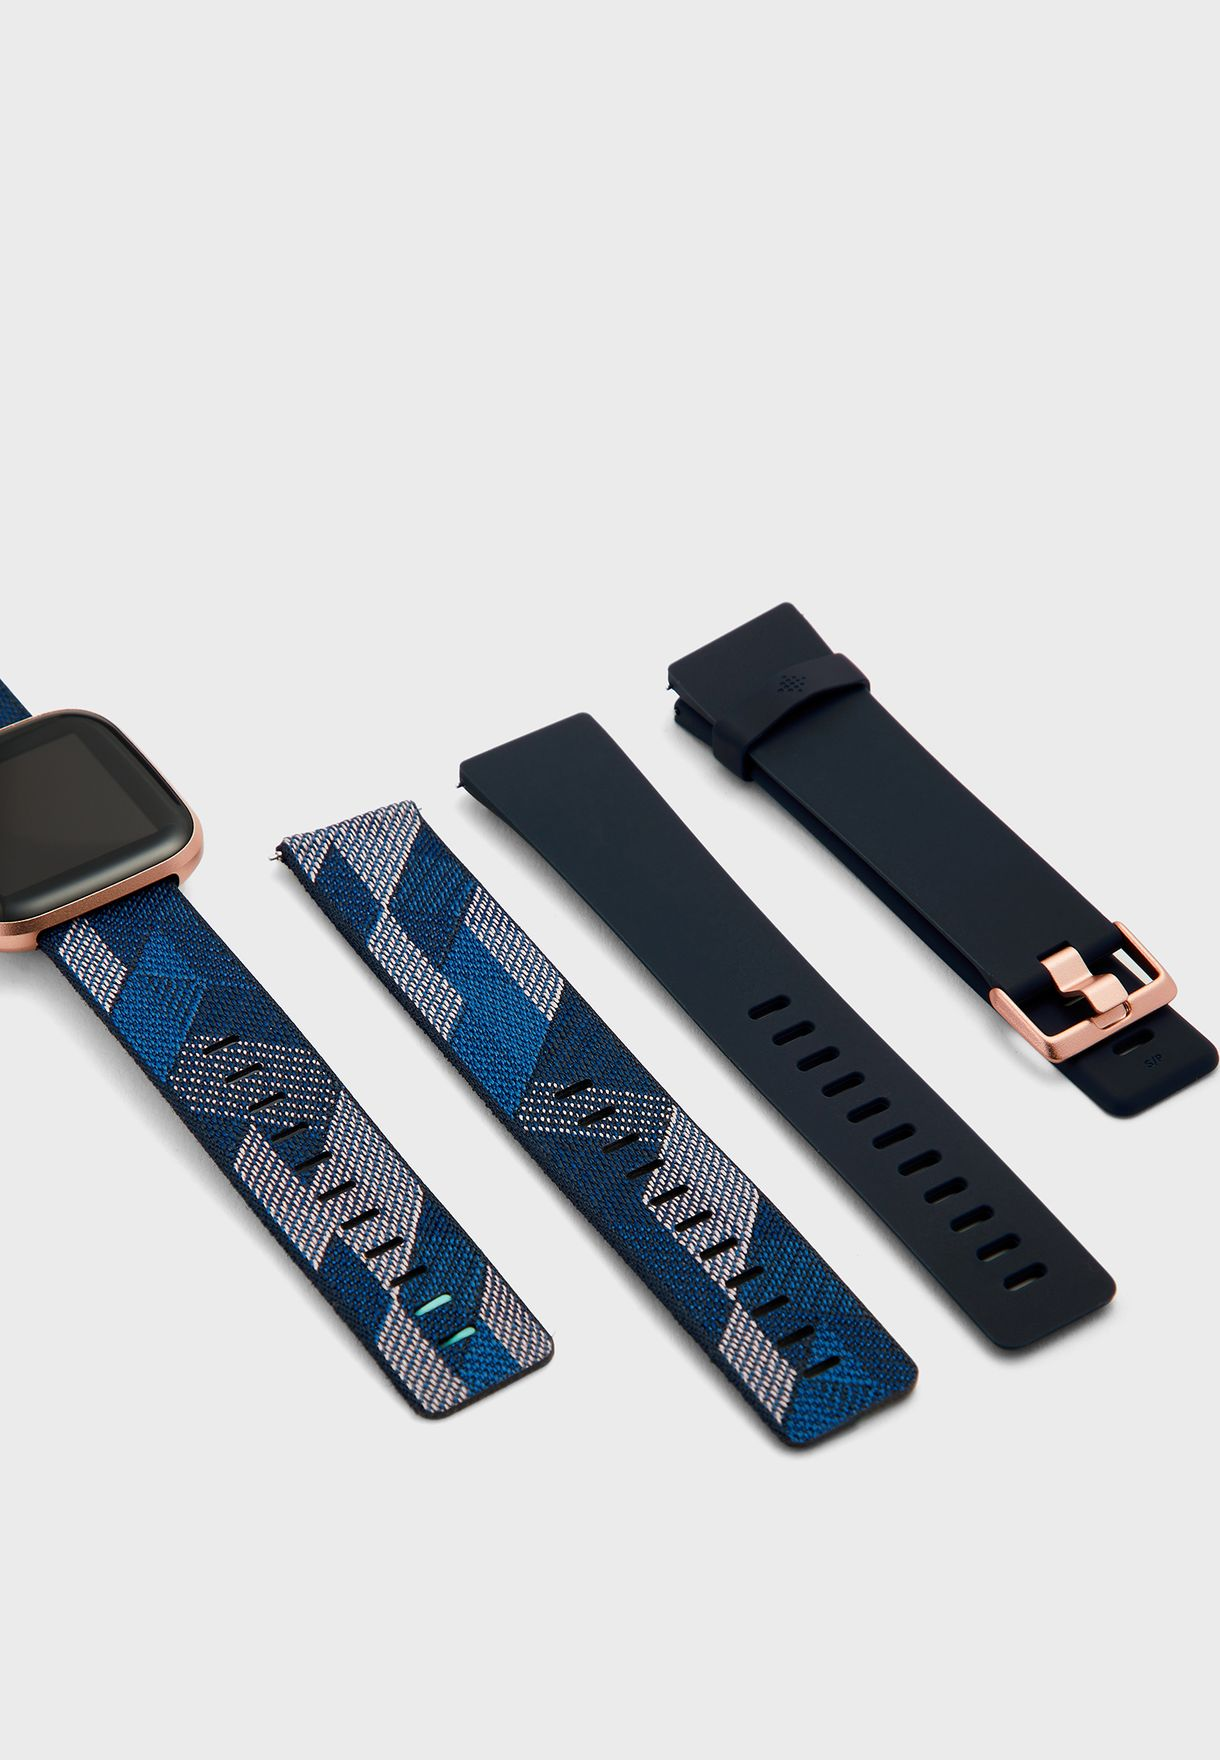 Versa 2 Special Edition Watch